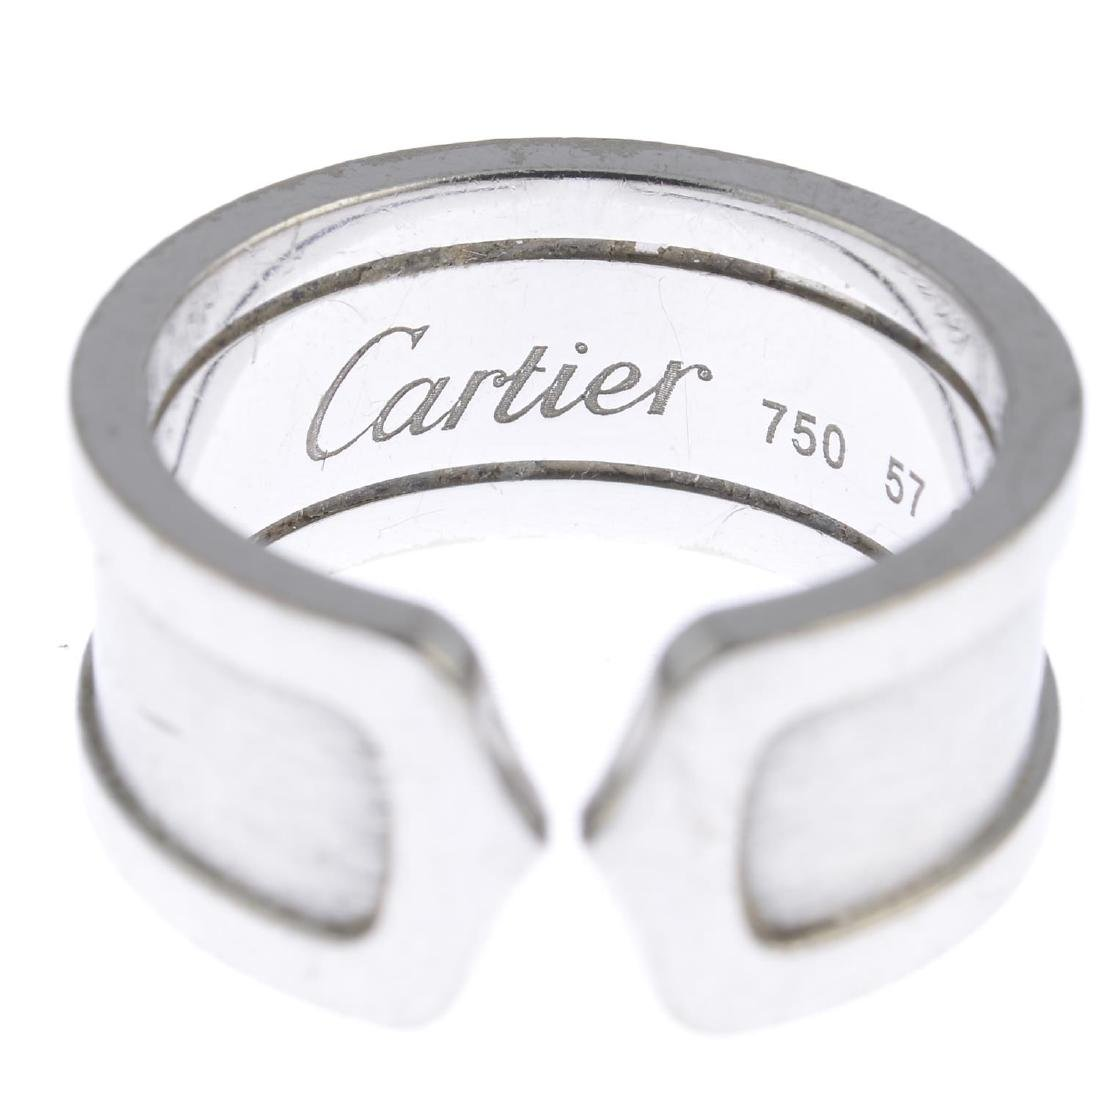 CARTIER - an 18ct gold 'C de Cartier' ring. Designed as - 2